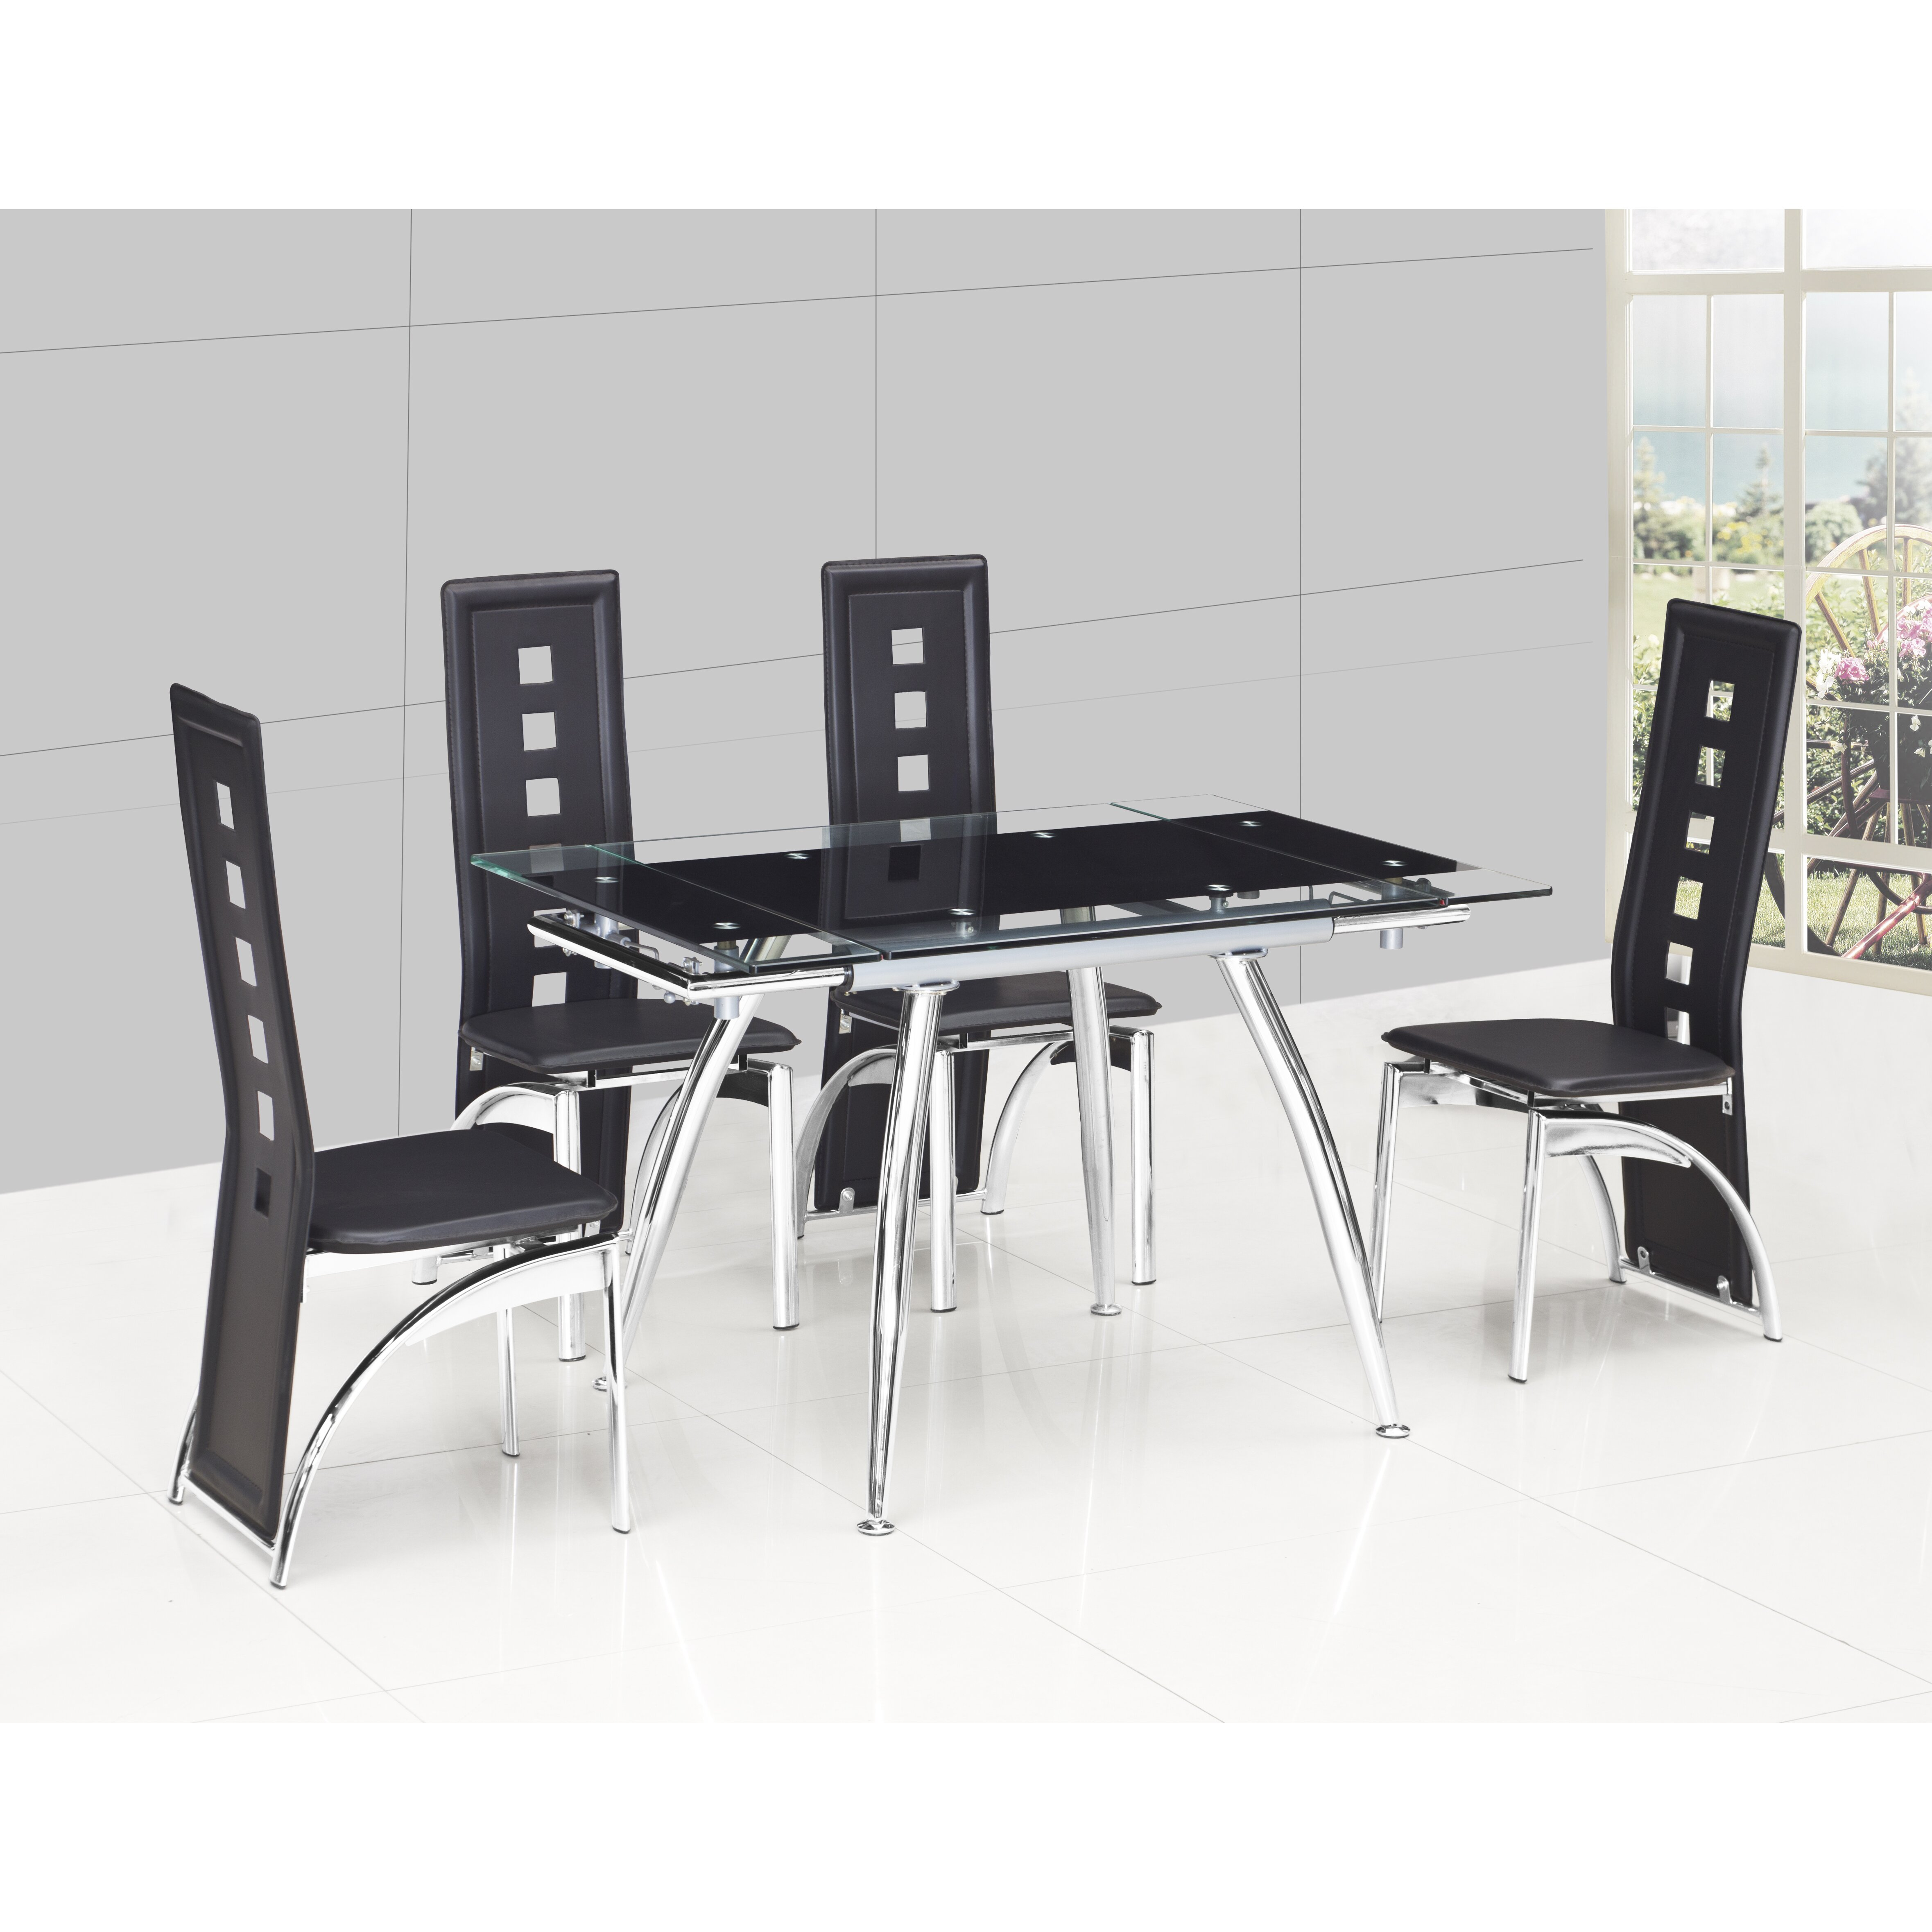 Urban Designs Micha Extendable Dining Table amp Reviews  : Urban Designs Micha Extendable Dining Table from www.wayfair.co.uk size 4718 x 4718 jpeg 1566kB